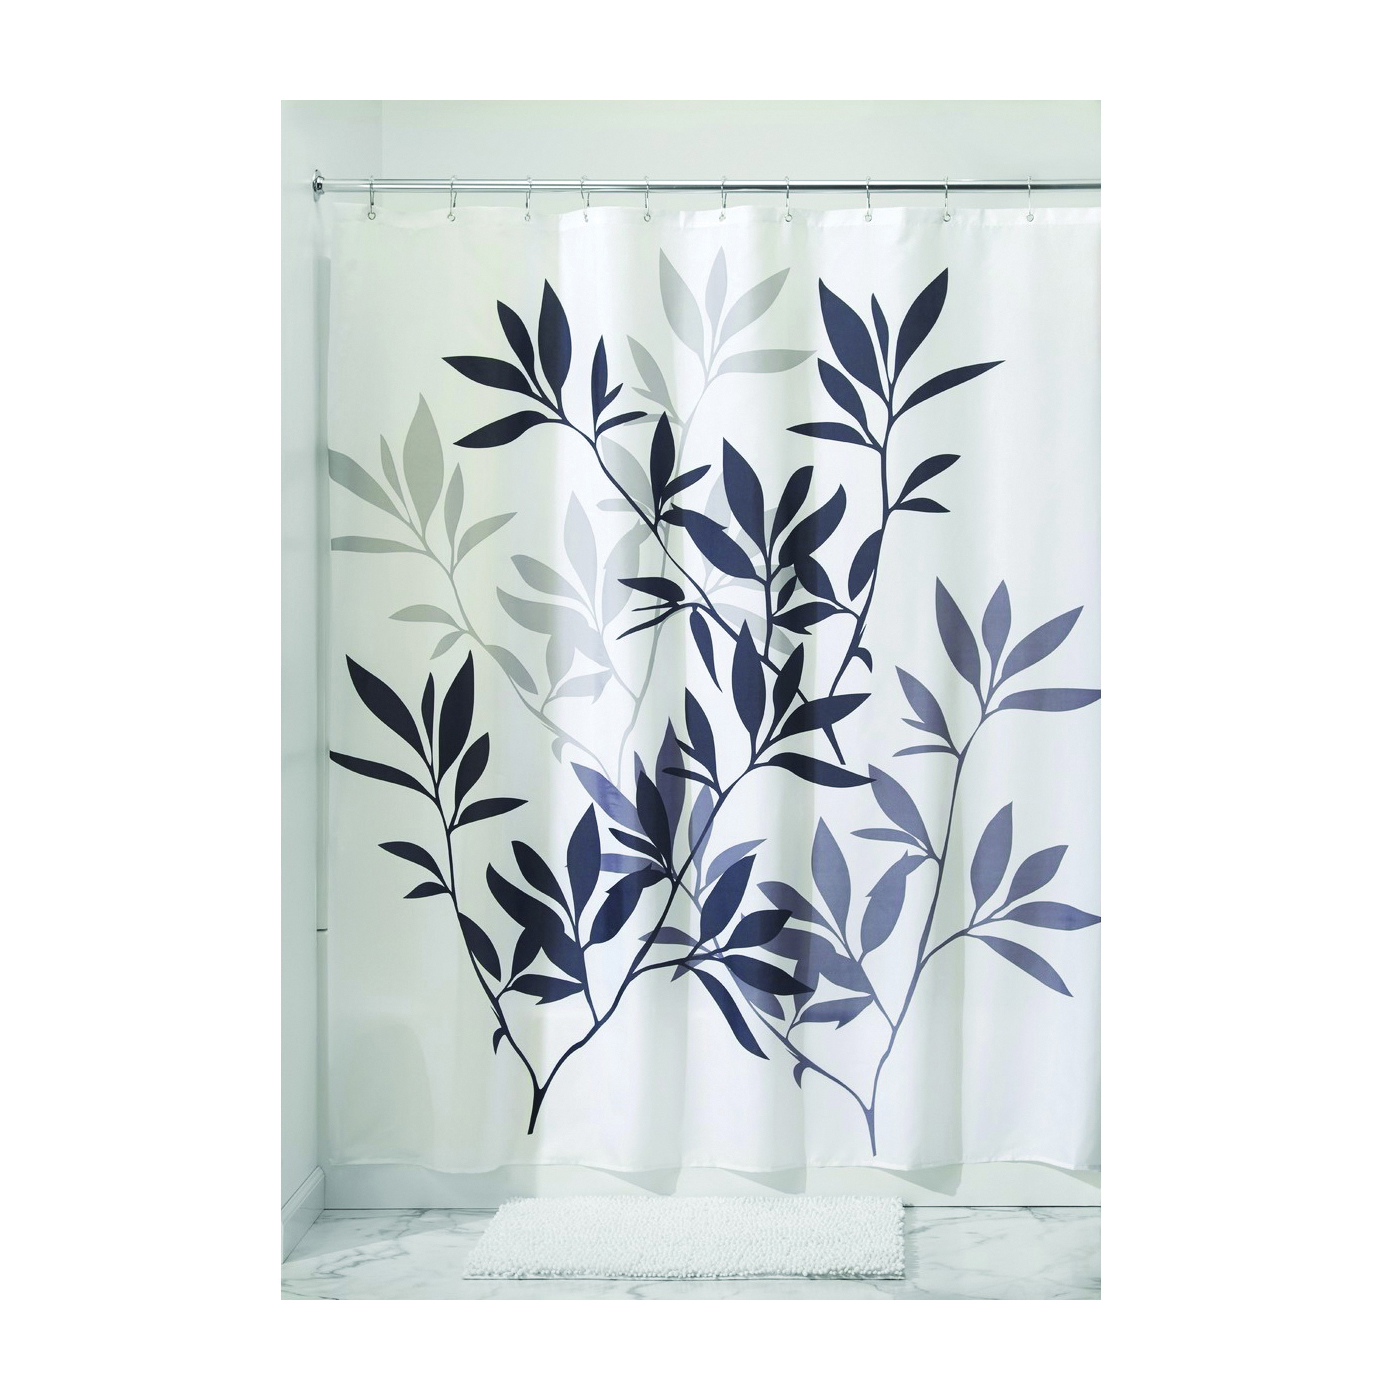 Picture of iDESIGN 35620 Shower Curtain, 72 in L, 72 in W, Polyester, Gray/Neutral Black